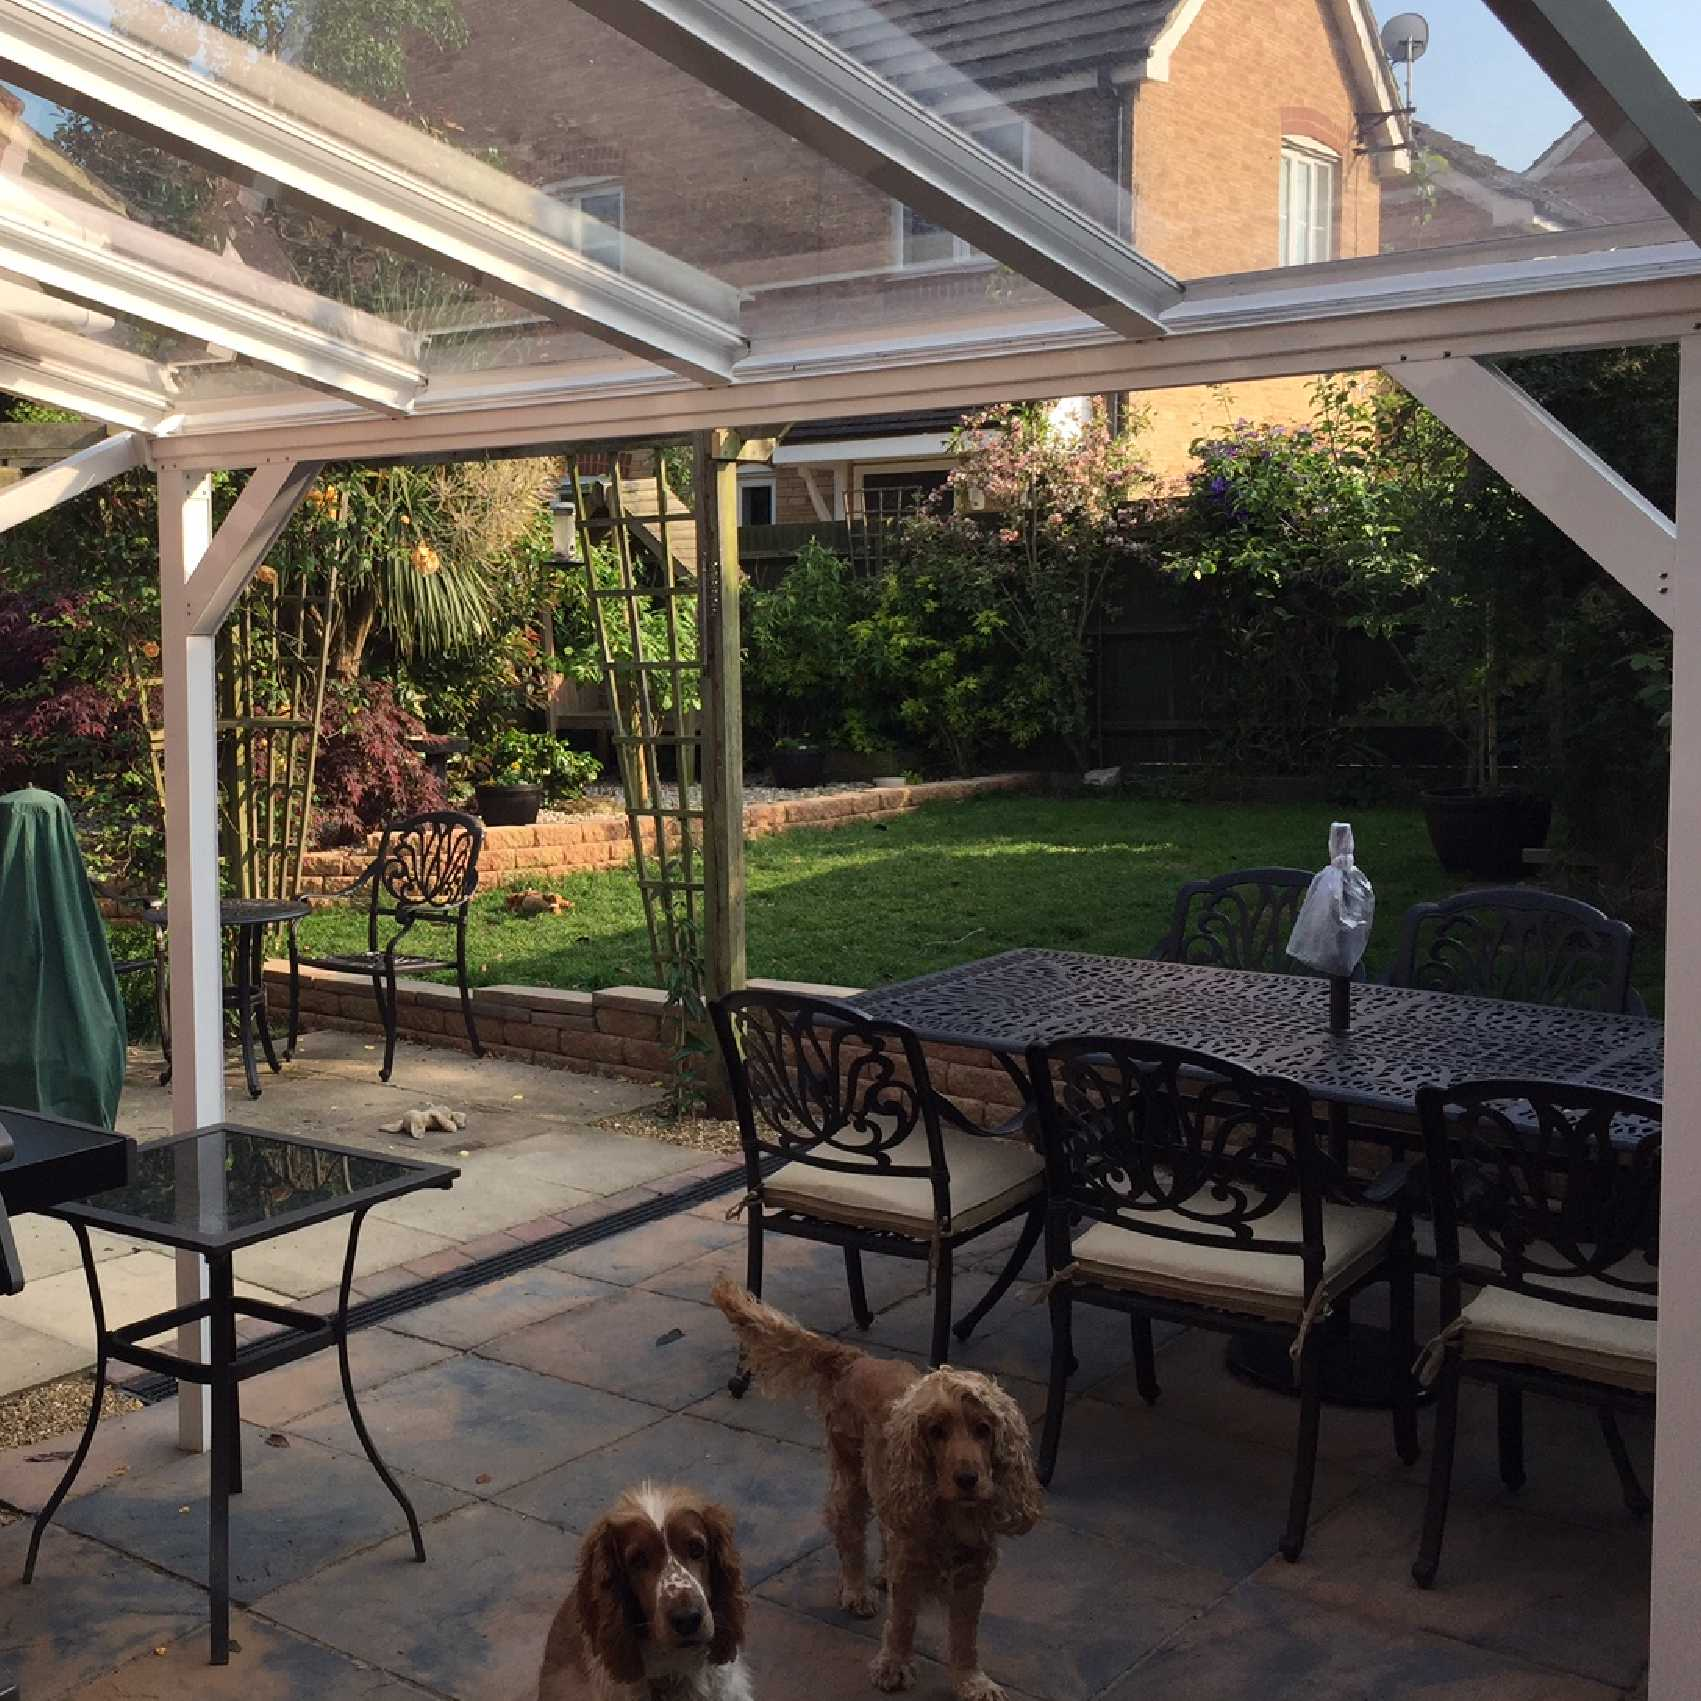 Affordable Omega Smart Lean-To Canopy with 6mm Glass Clear Plate Polycarbonate Glazing - 4.2m (W) x 1.5m (P), (3) Supporting Posts